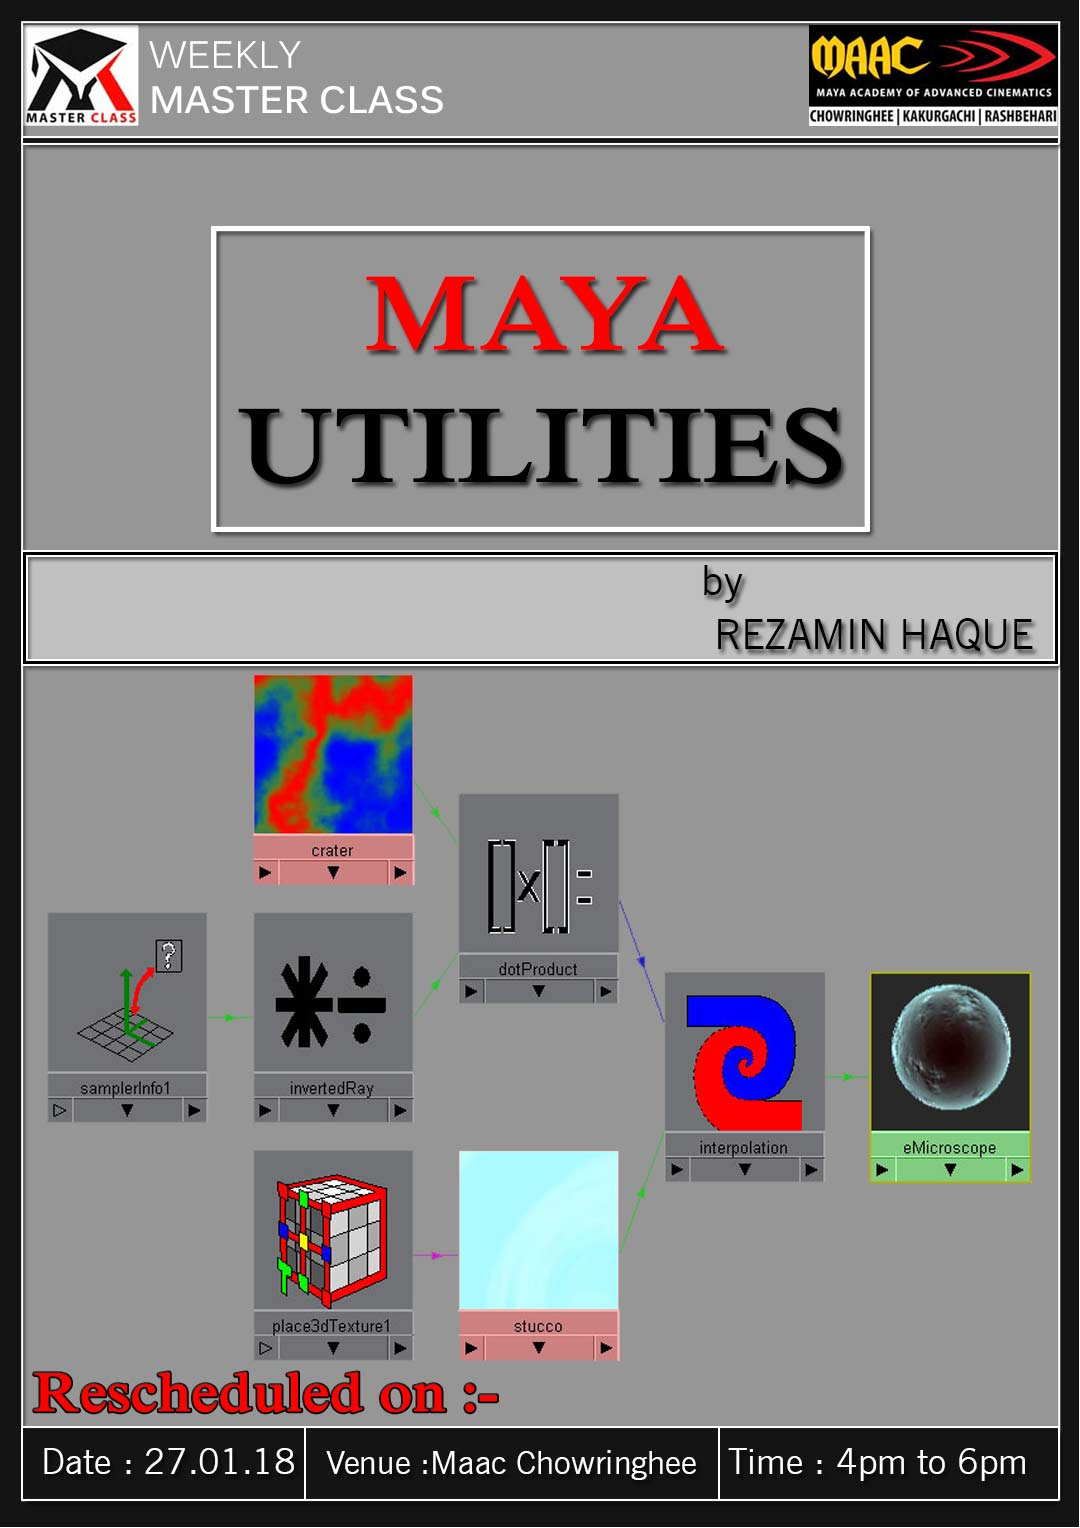 Weekly Master Class on Maya Utilities